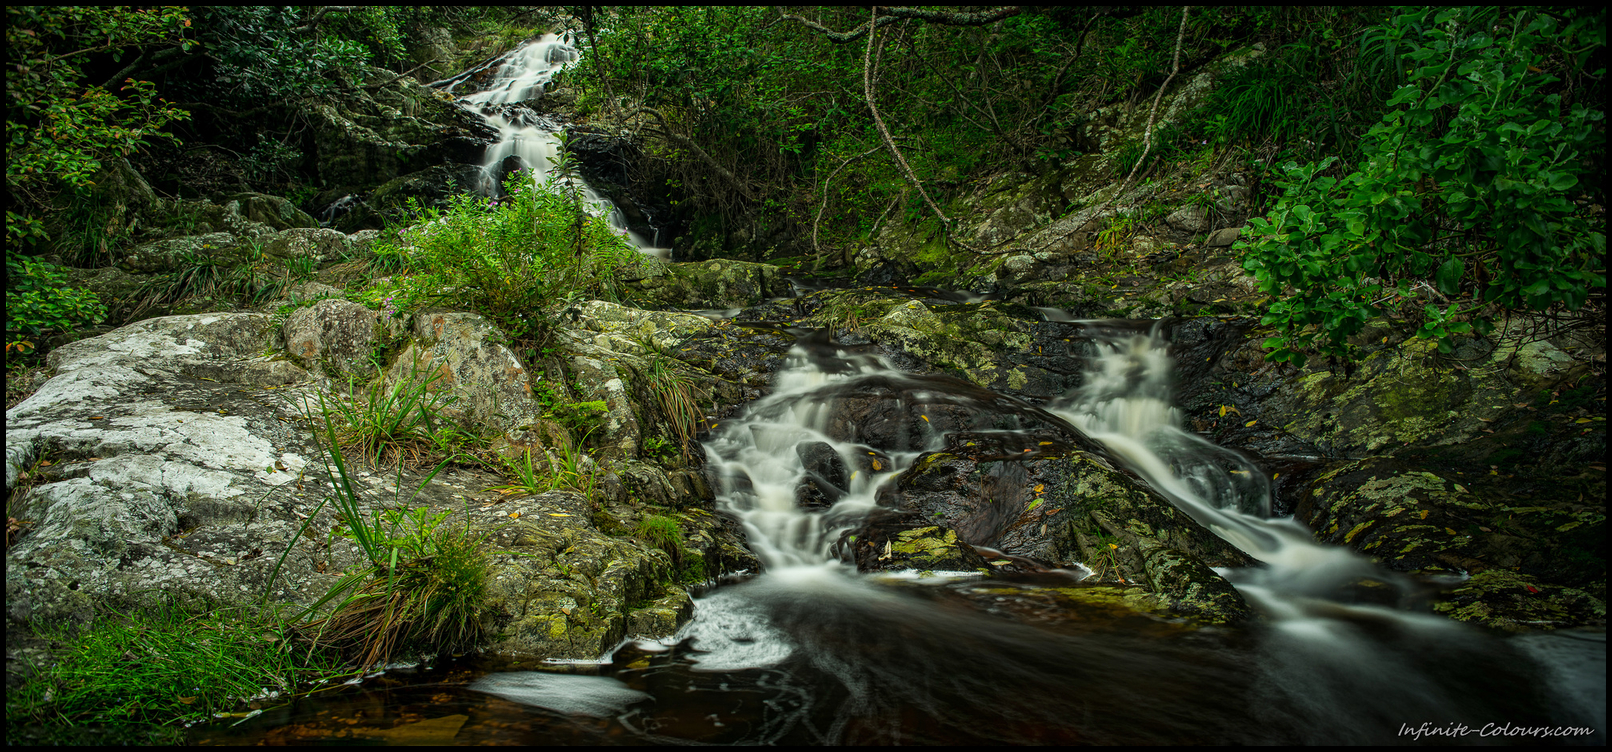 Waterfall between Oakhurst and Andre huts, Otter Trail